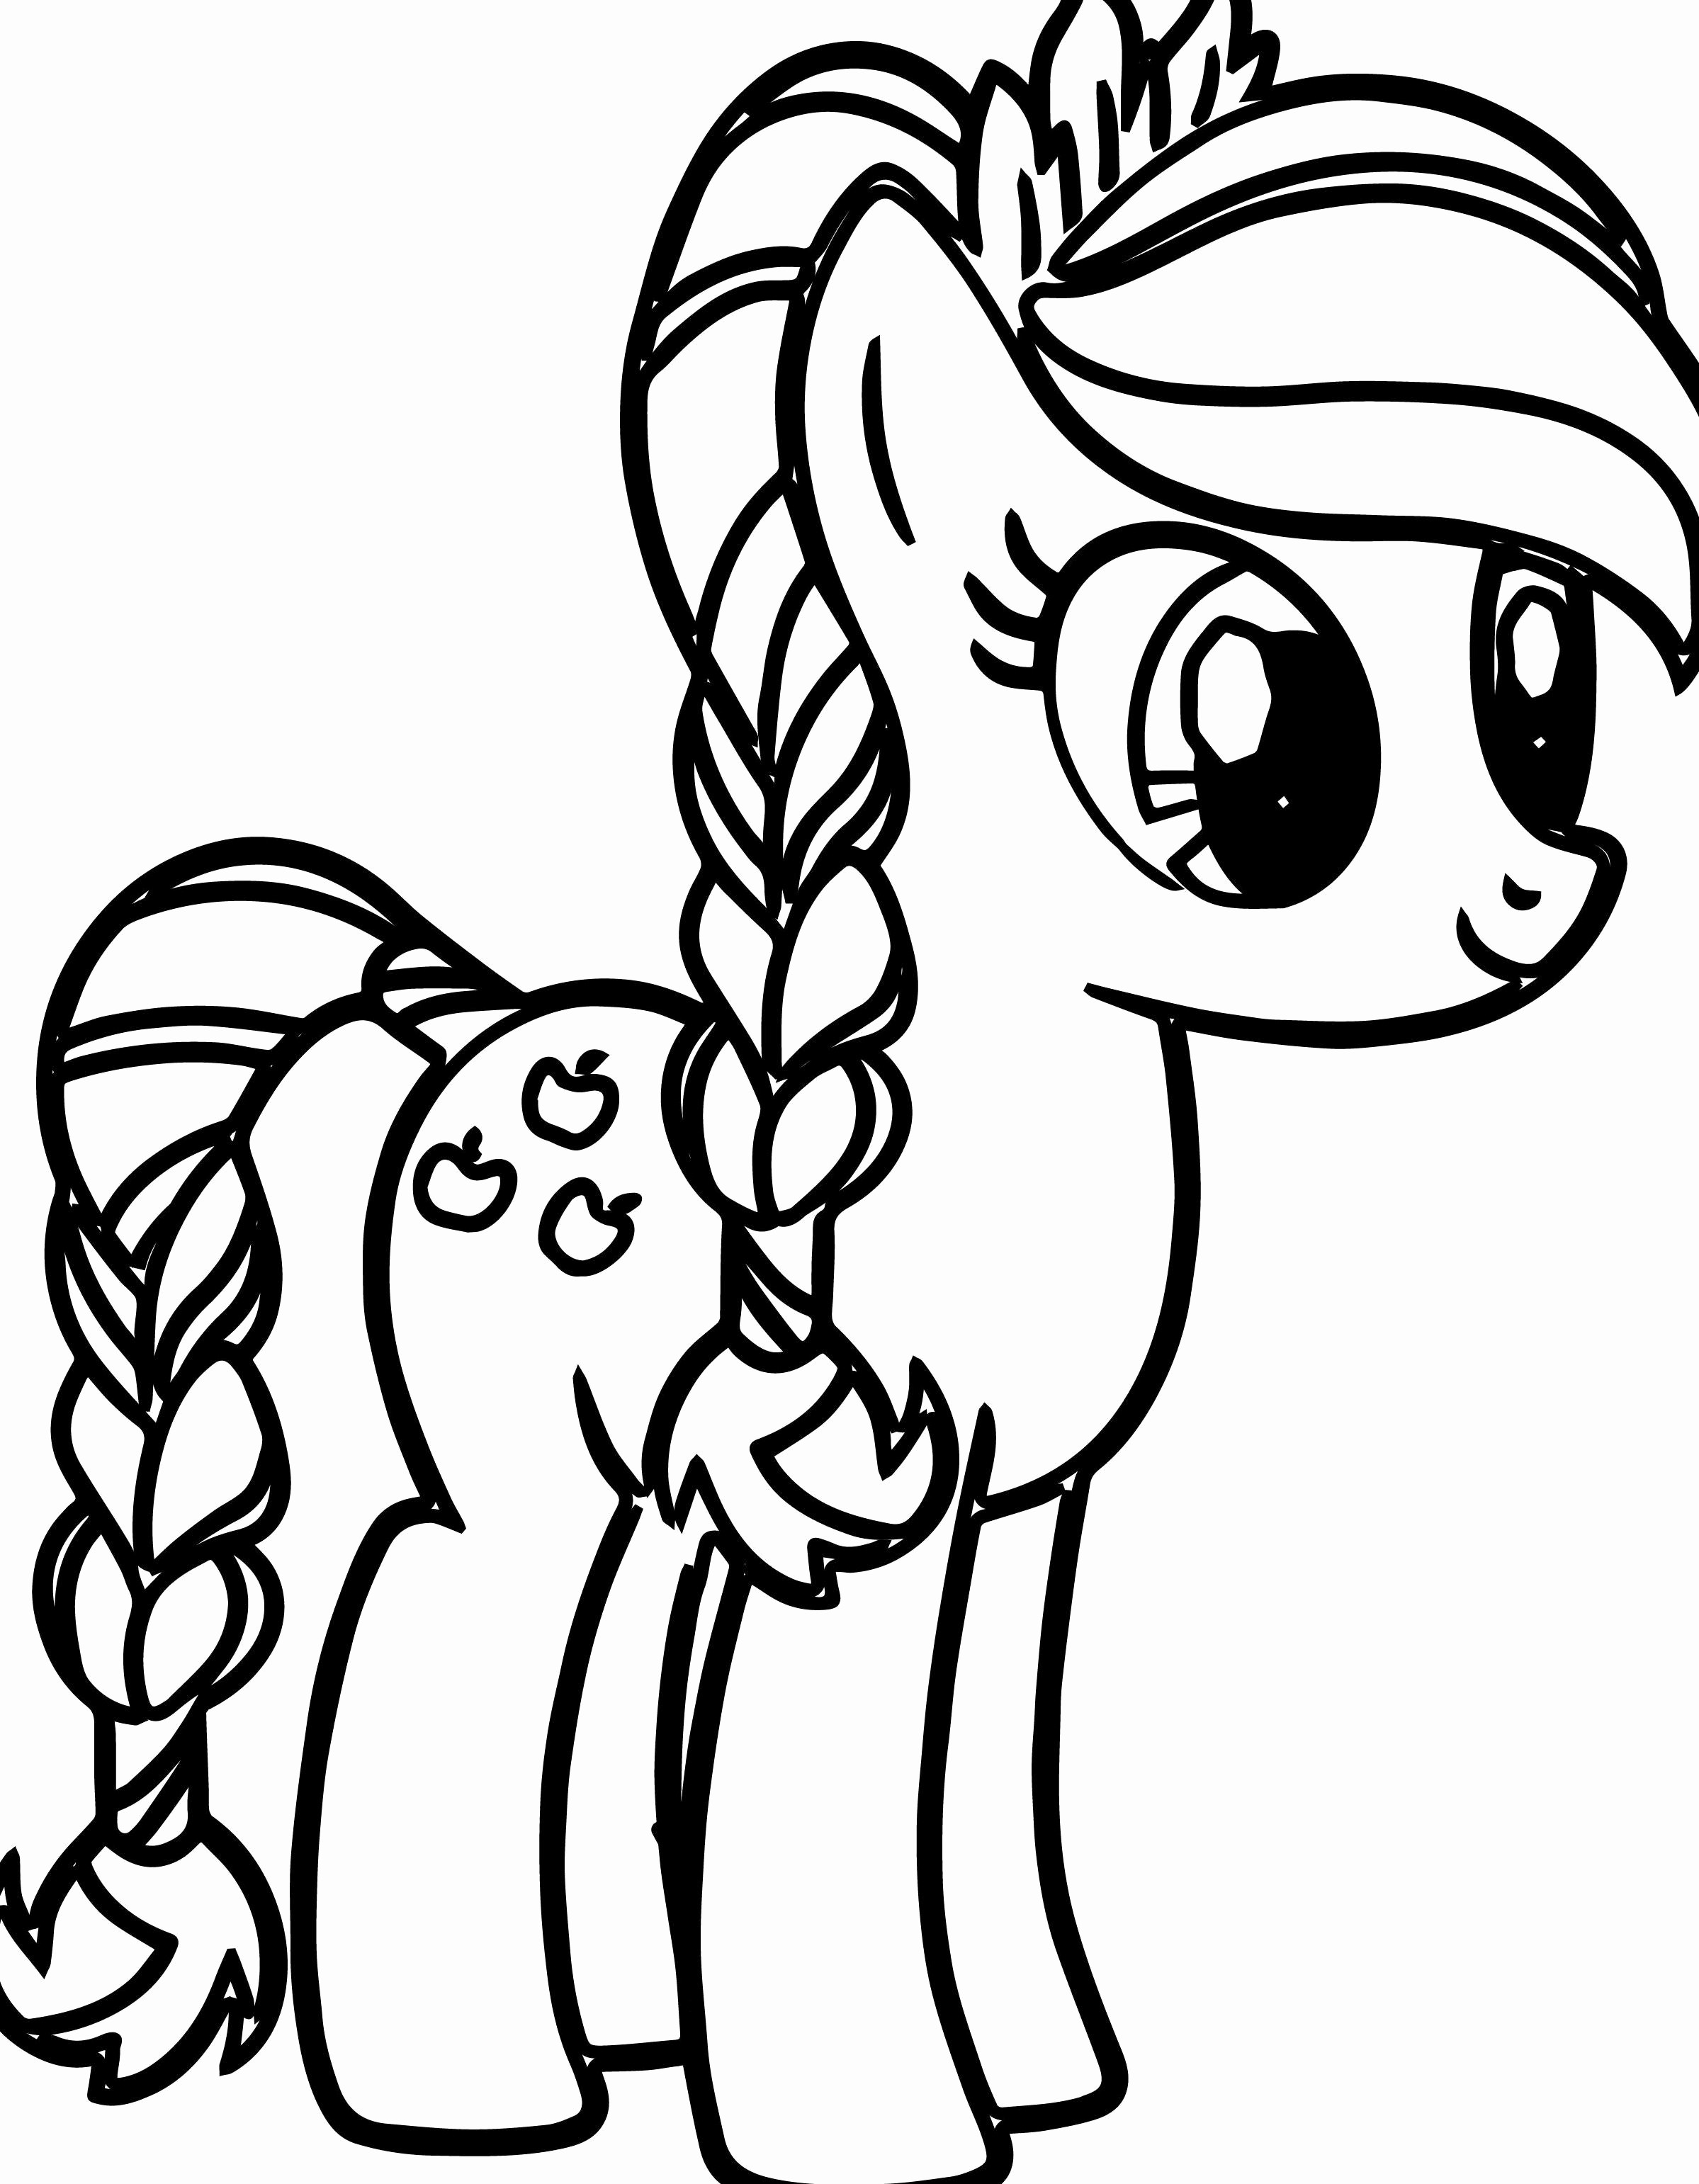 my little pony pictures of rainbow dash rainbow dash equestria girl drawing free download on little pictures rainbow pony dash my of